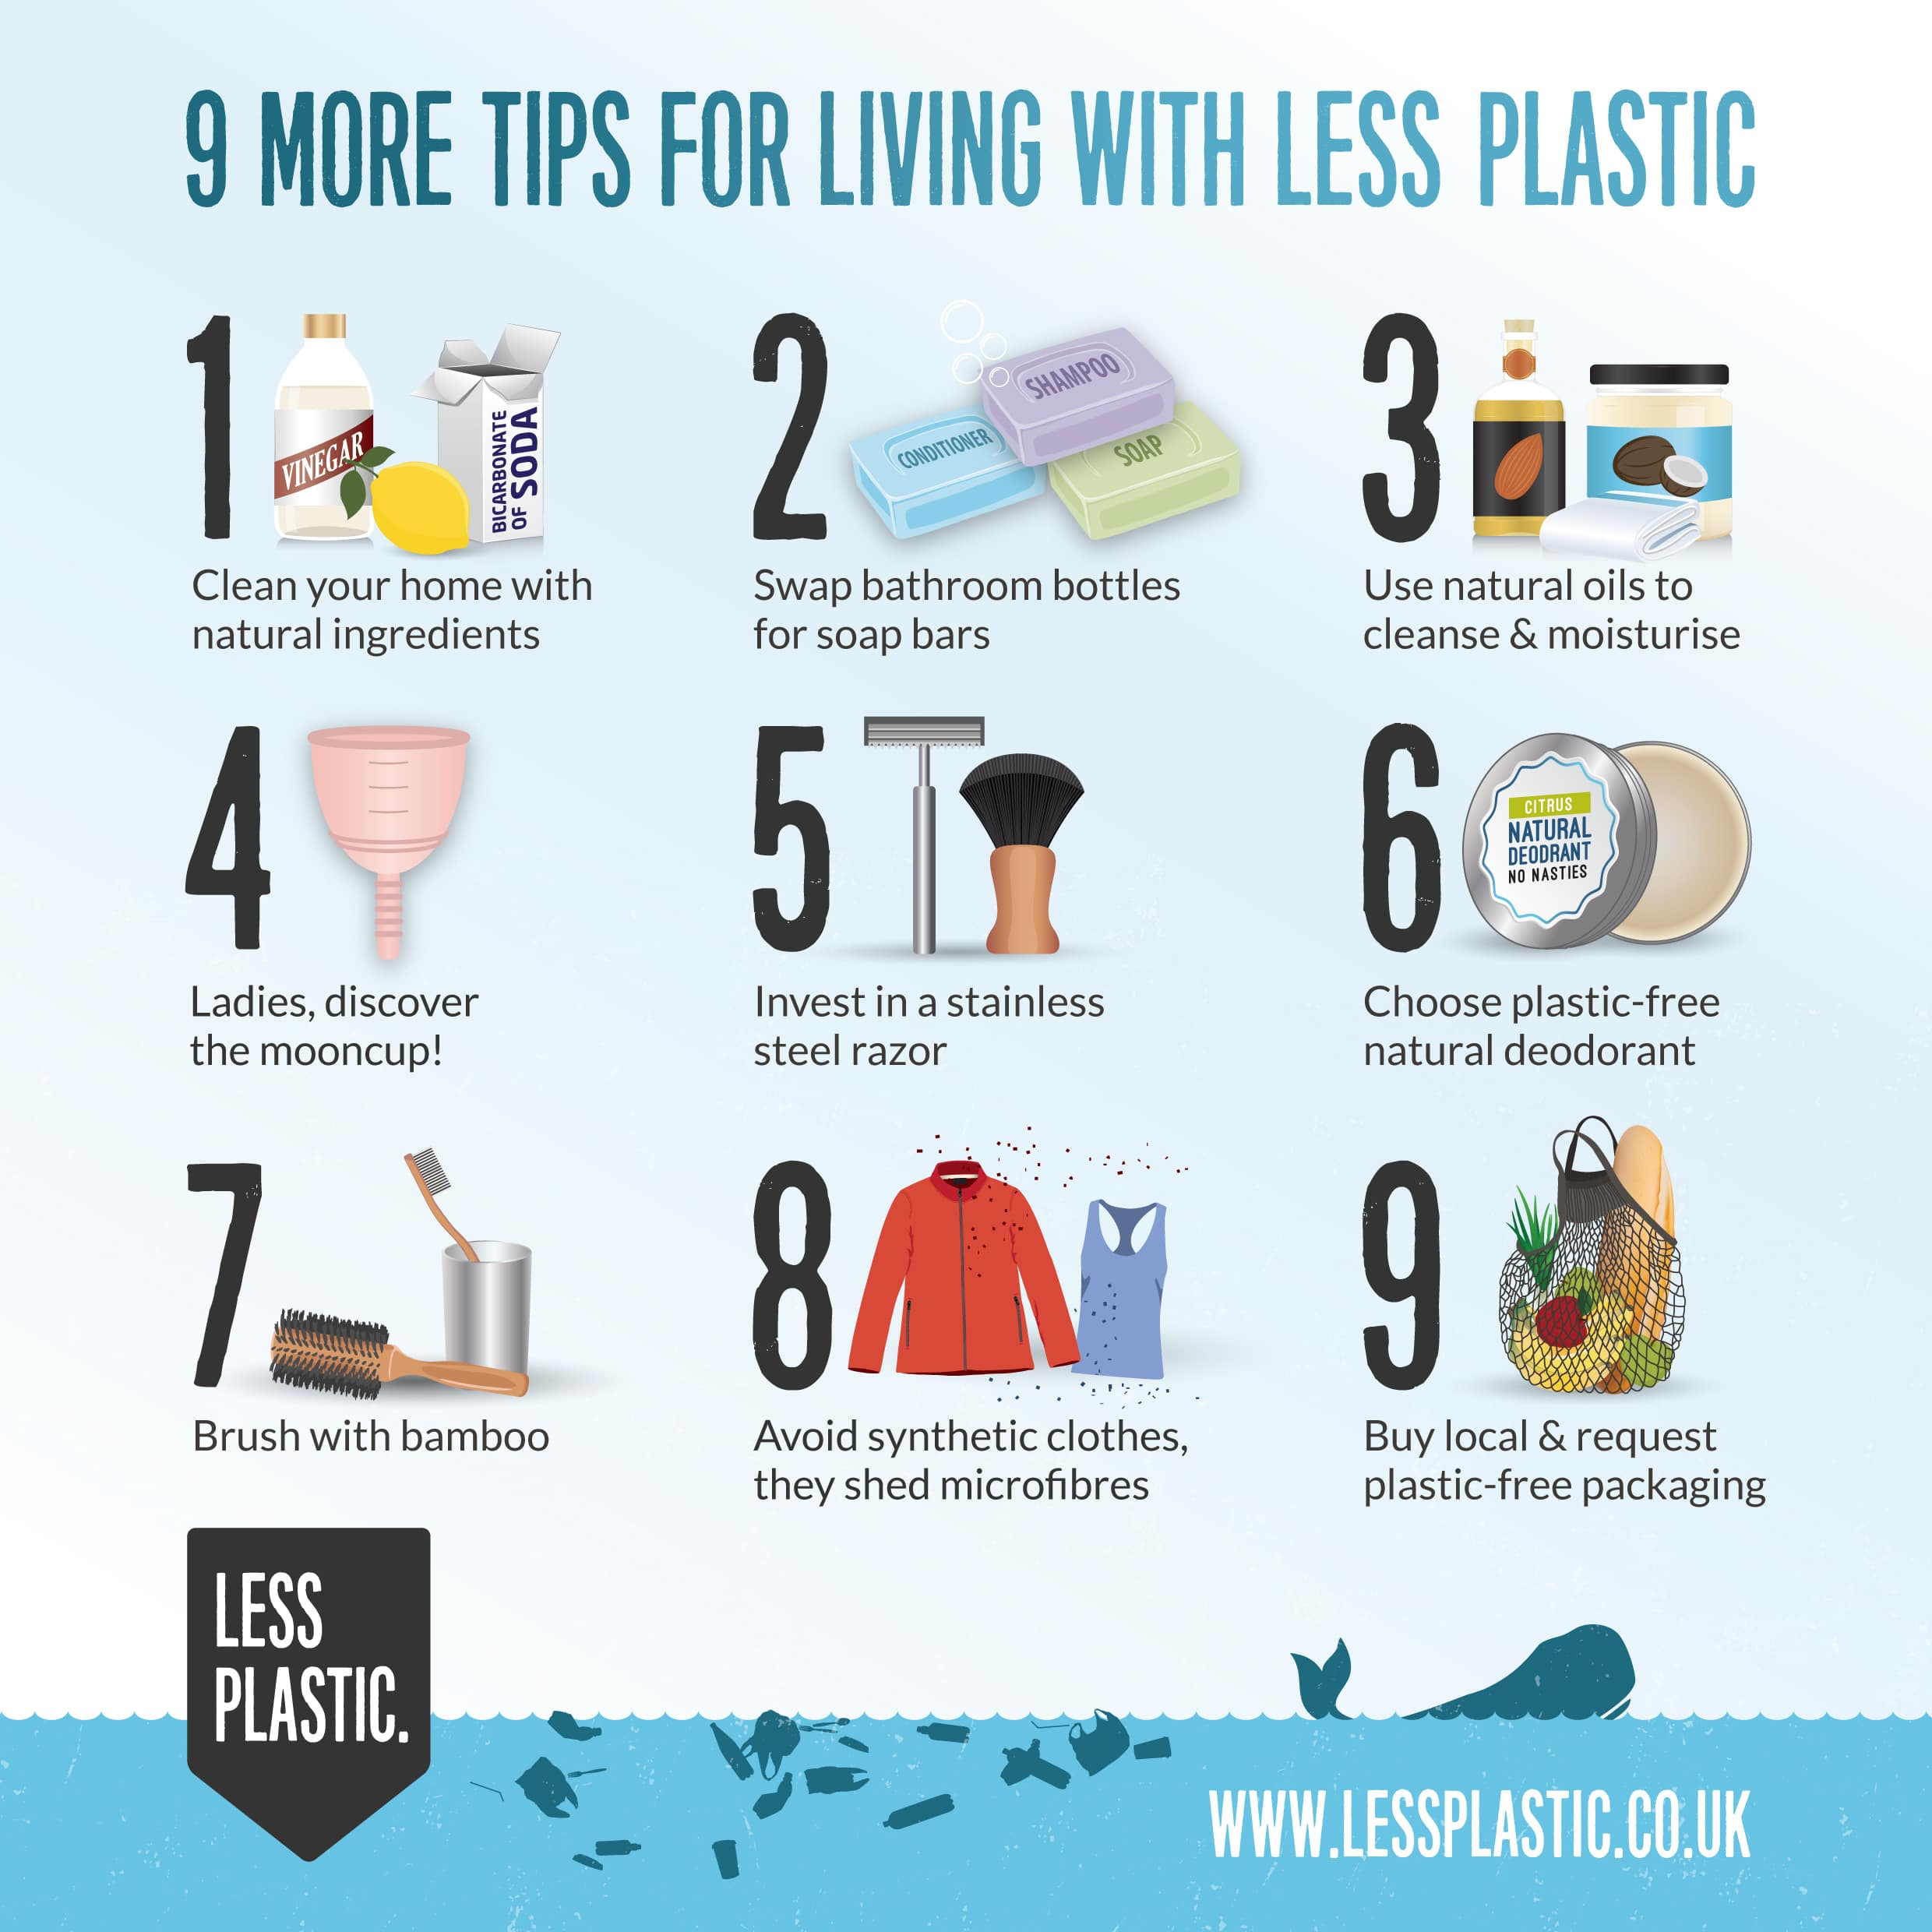 9 more tips for living with less plastic infographic